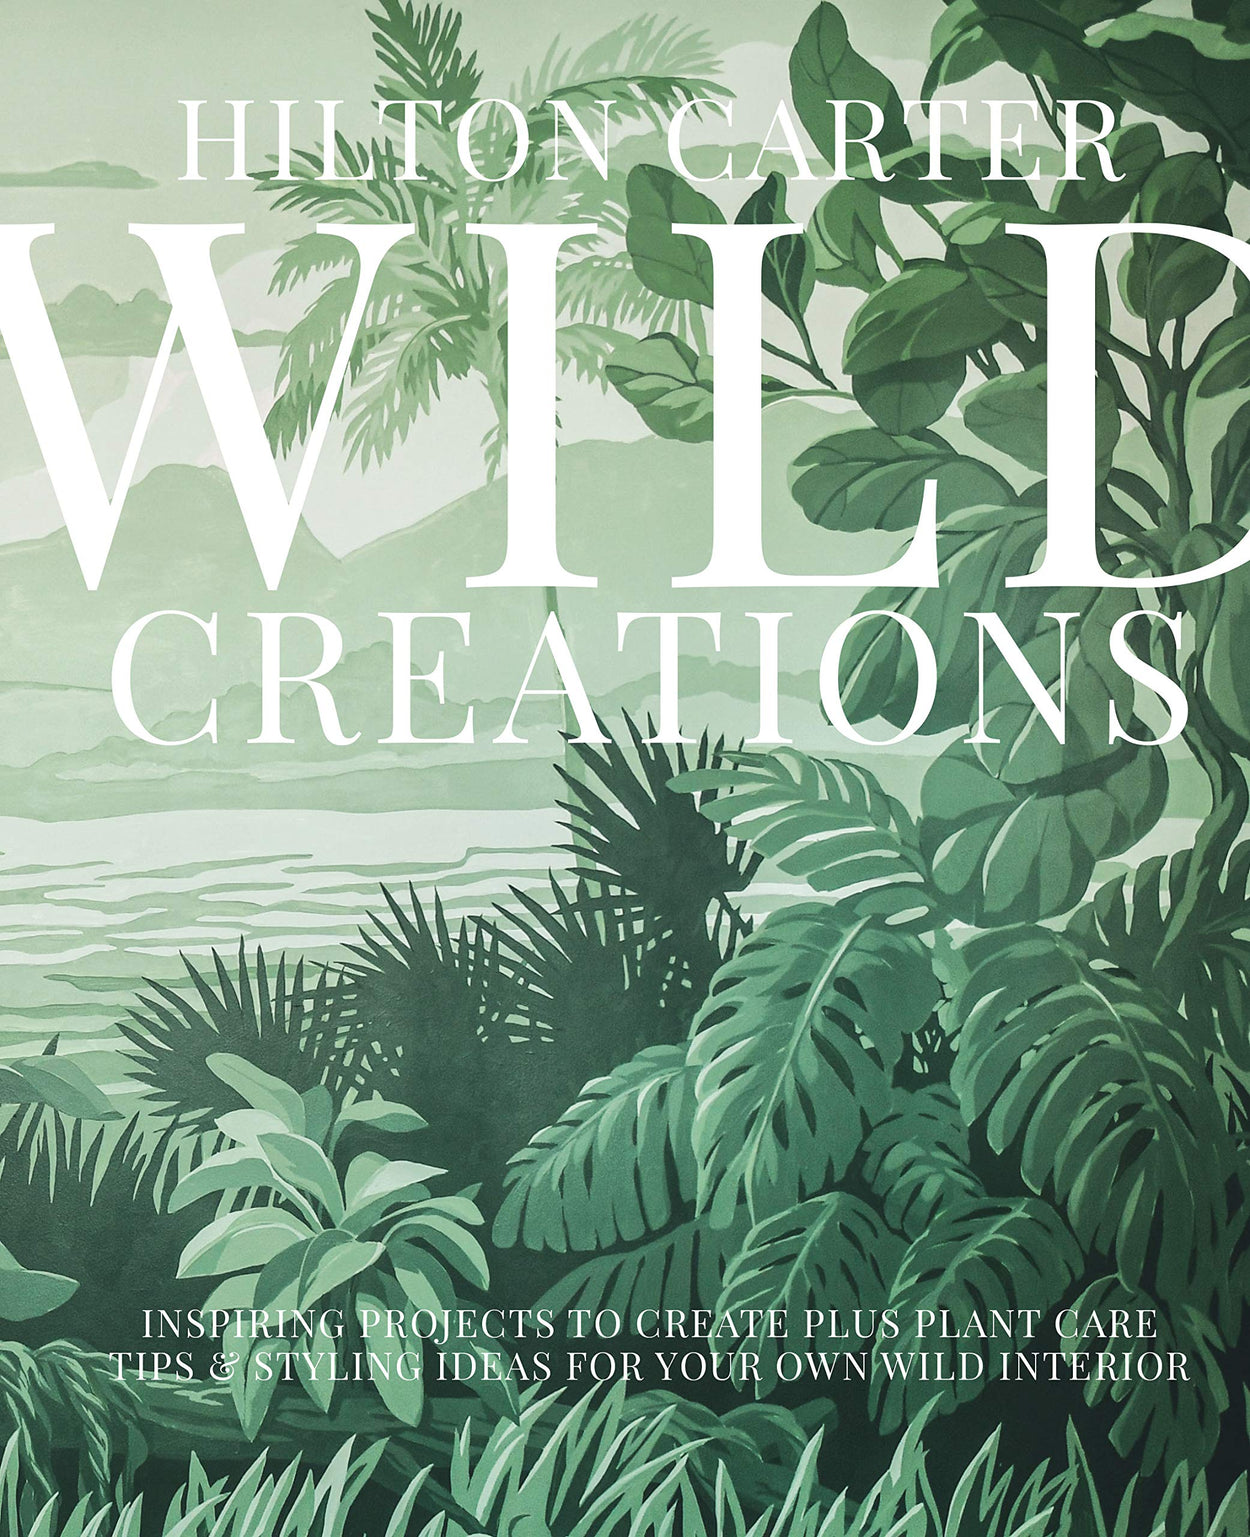 Wild Creations Book Cover with Graphics of Lush Tropical Plants in various shades of green